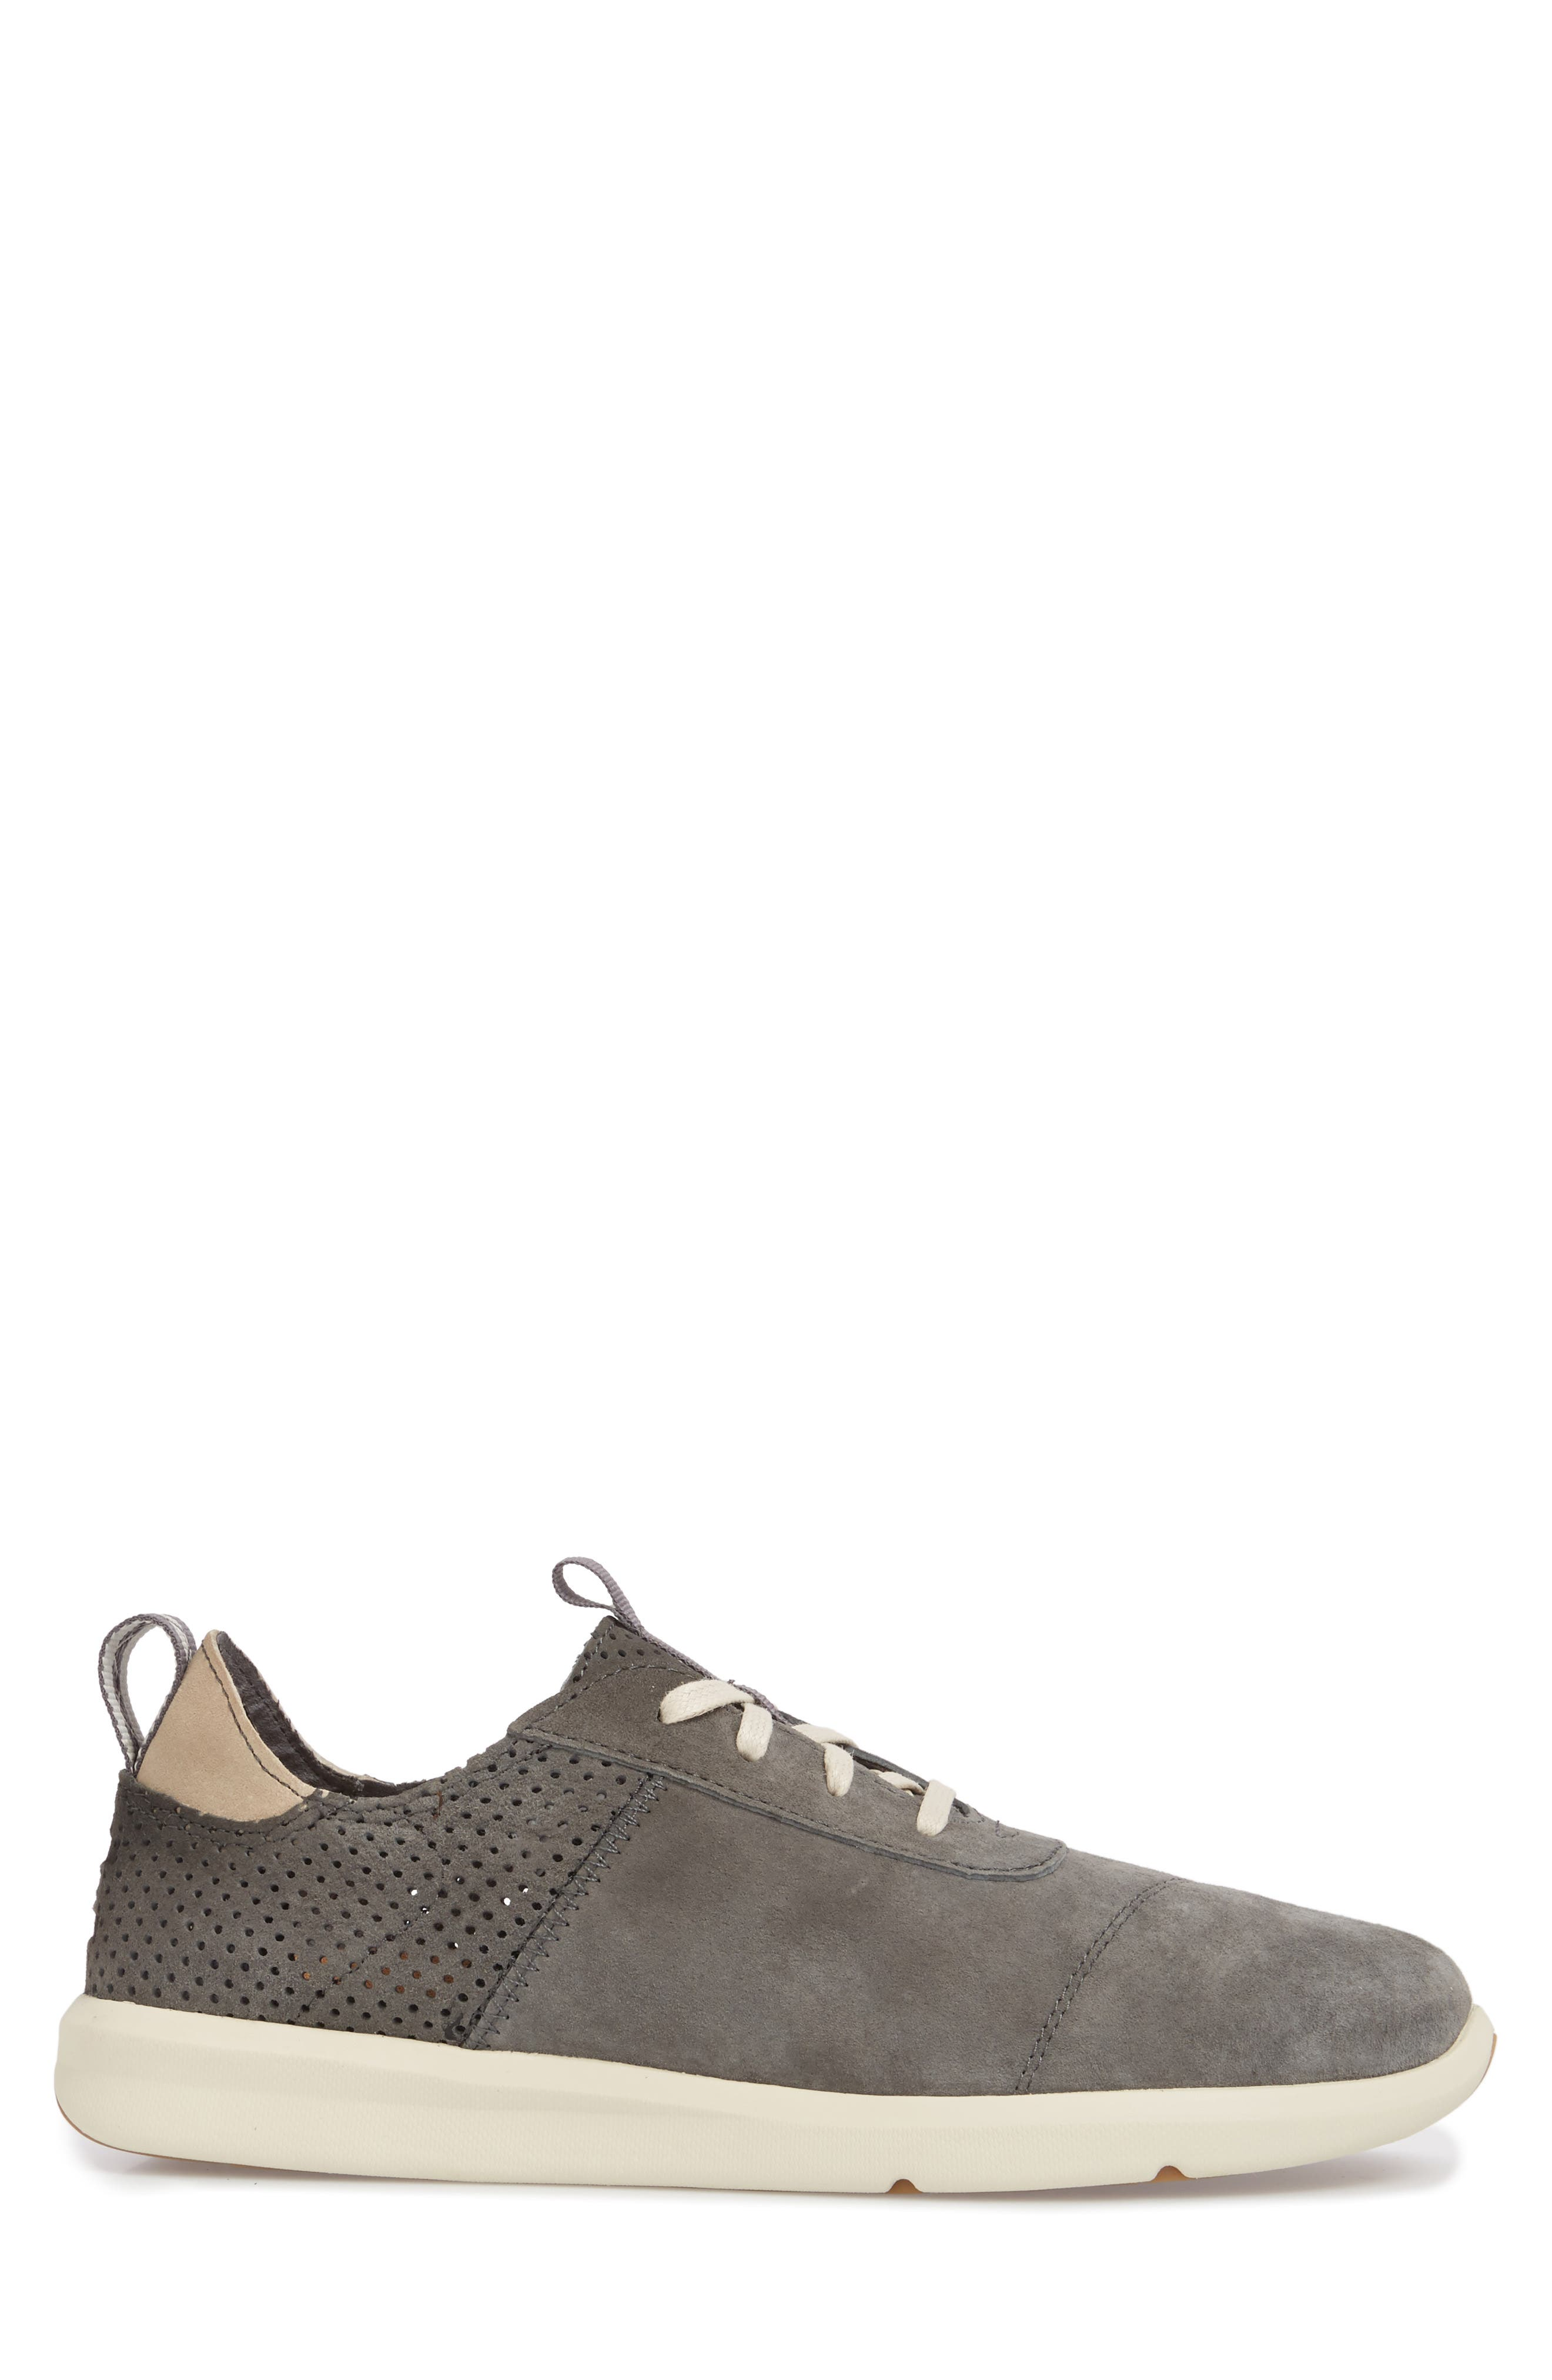 Cabrillo Perforated Low Top Sneaker,                             Alternate thumbnail 3, color,                             Shade Suede